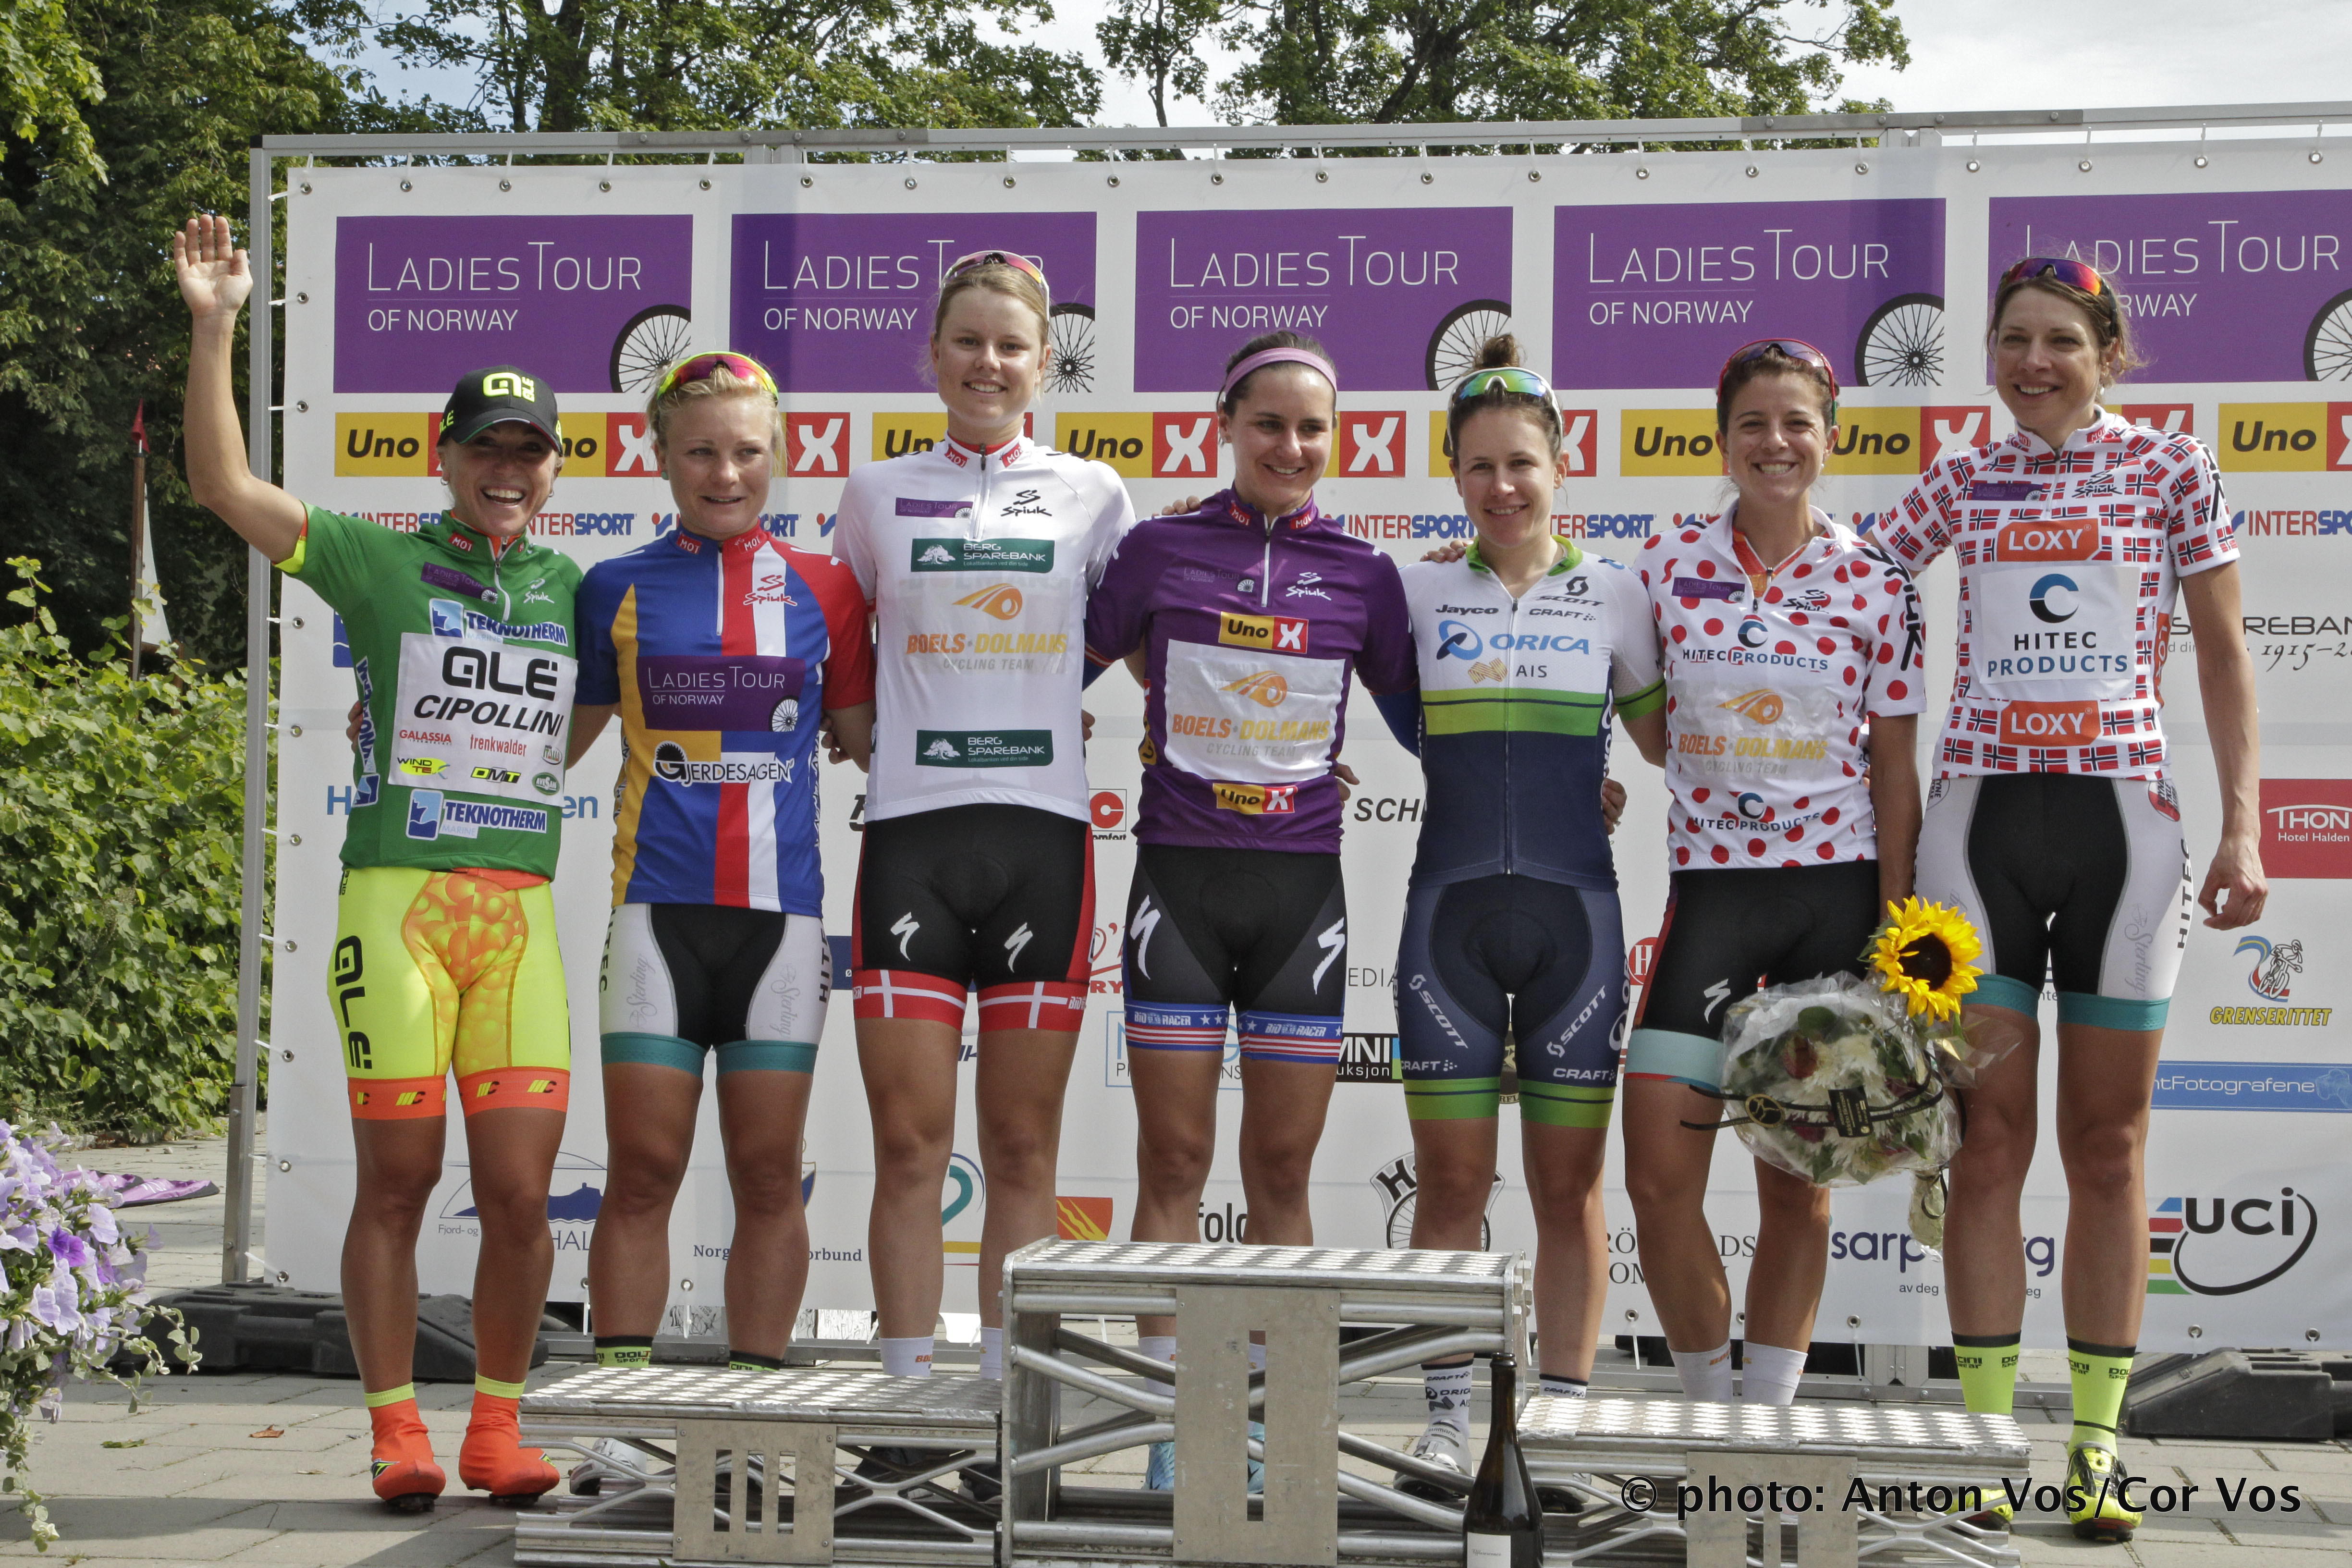 Halden - Norway - wielrennen - cycling - radsport - cyclisme -  Guarnier Megan of Boels Dolmans Cycling Team - Olds Shelley of Ale Cipollini (ITA) Moberg Emilie of Hitec Products - Dideriksen Amalie of Boels Dolmans Cycling Team - Spratt Amanda of Orica AIS Stevens Evelyn of Boels Dolmans Cycling Team - Heine Vita of Hitec Products pictured during  stage - 2 of the Ladiestour of Norway 2015 - photo Anton Vos/Cor Vos © 2015